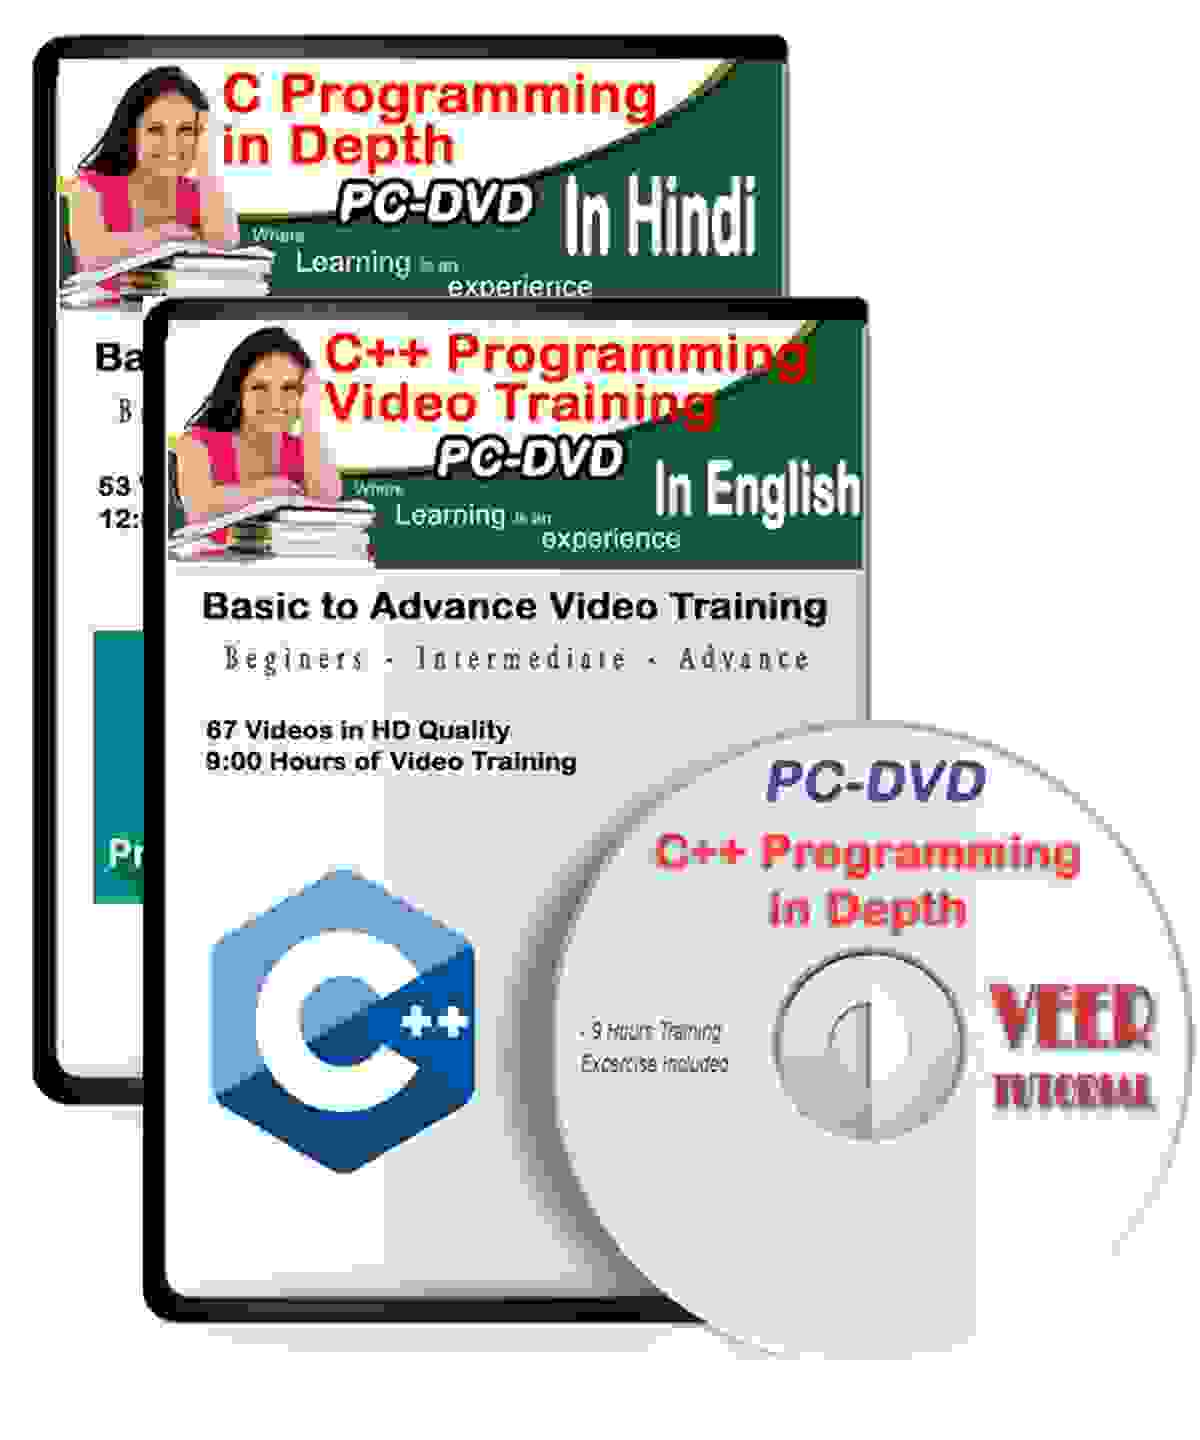 C/C++ Tutorial DVD Video Training (112 Vidoes, 21 Hrs) 2 DVDs Hindi+English Learning Video